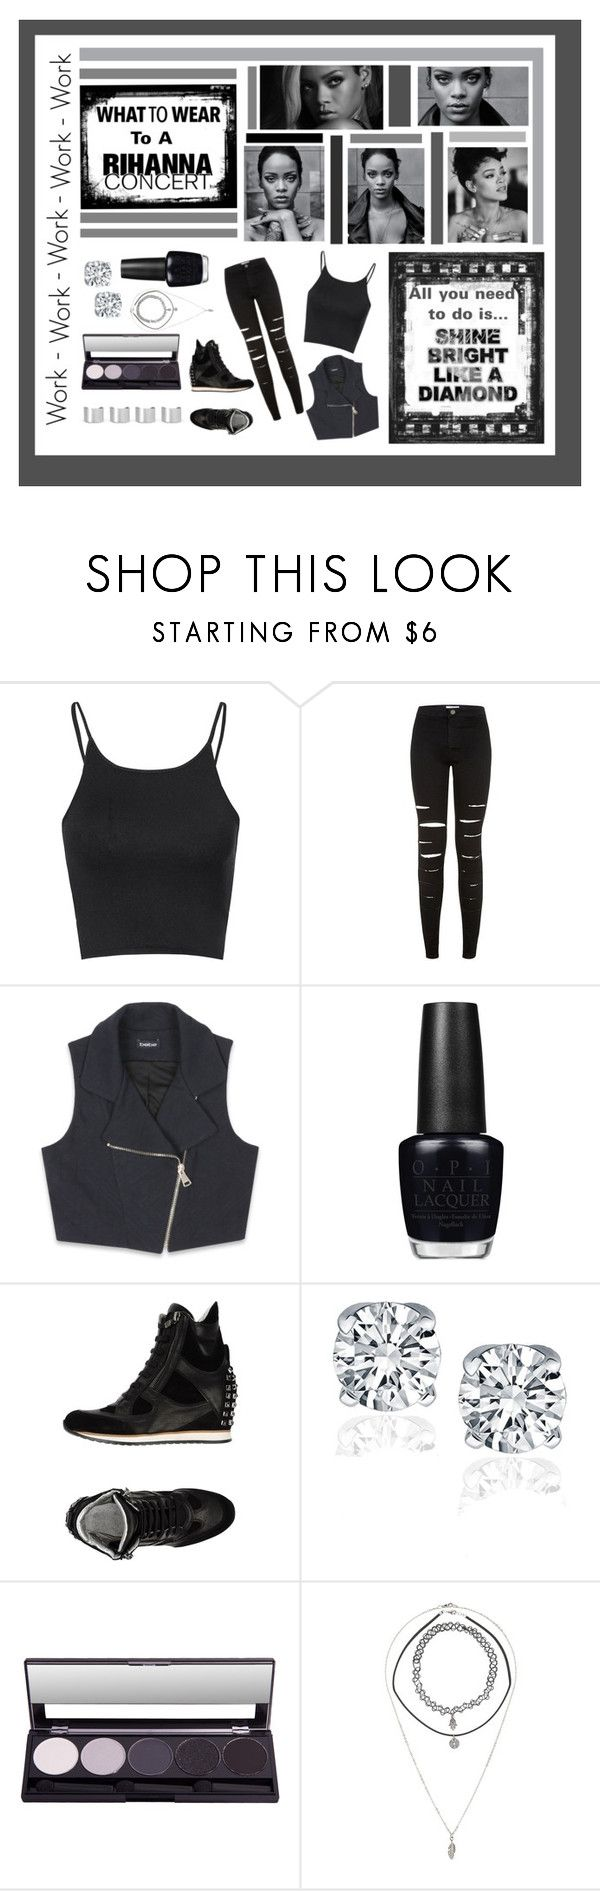 """""""What to wear to a Rihanna Concert"""" by ember-shadow ❤ liked on Polyvore featuring Glamorous, Bebe, OPI, ELENA IACHI, Charlotte Russe, Maison Margiela, contest and Rihanna"""